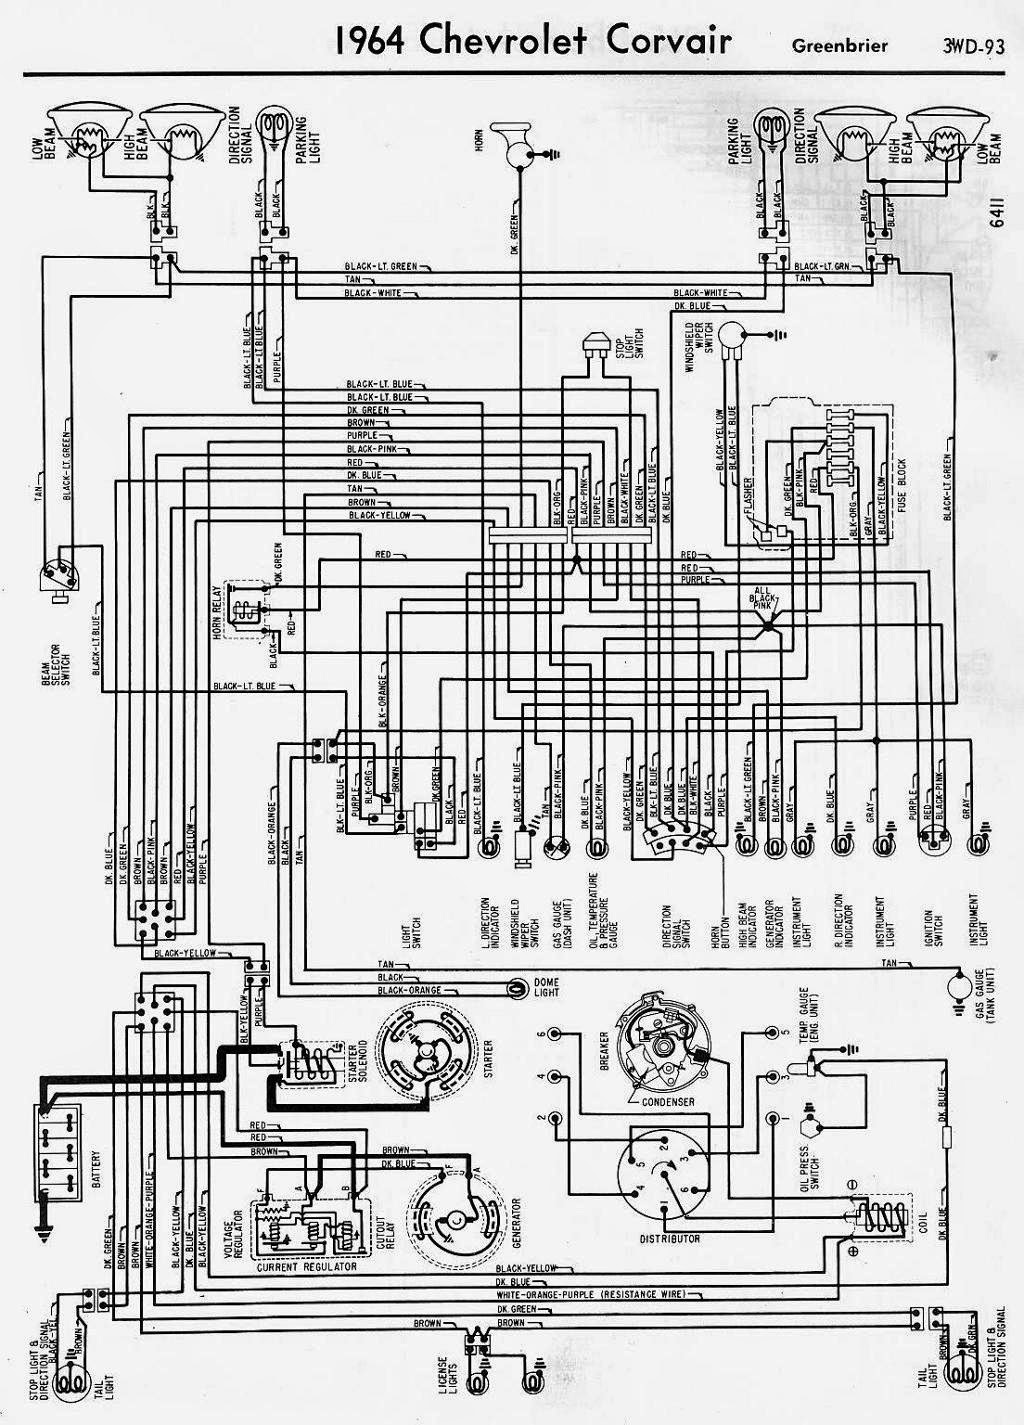 small resolution of 1964 chevrolet corvair greenbrier wiring diagram schematic wiring